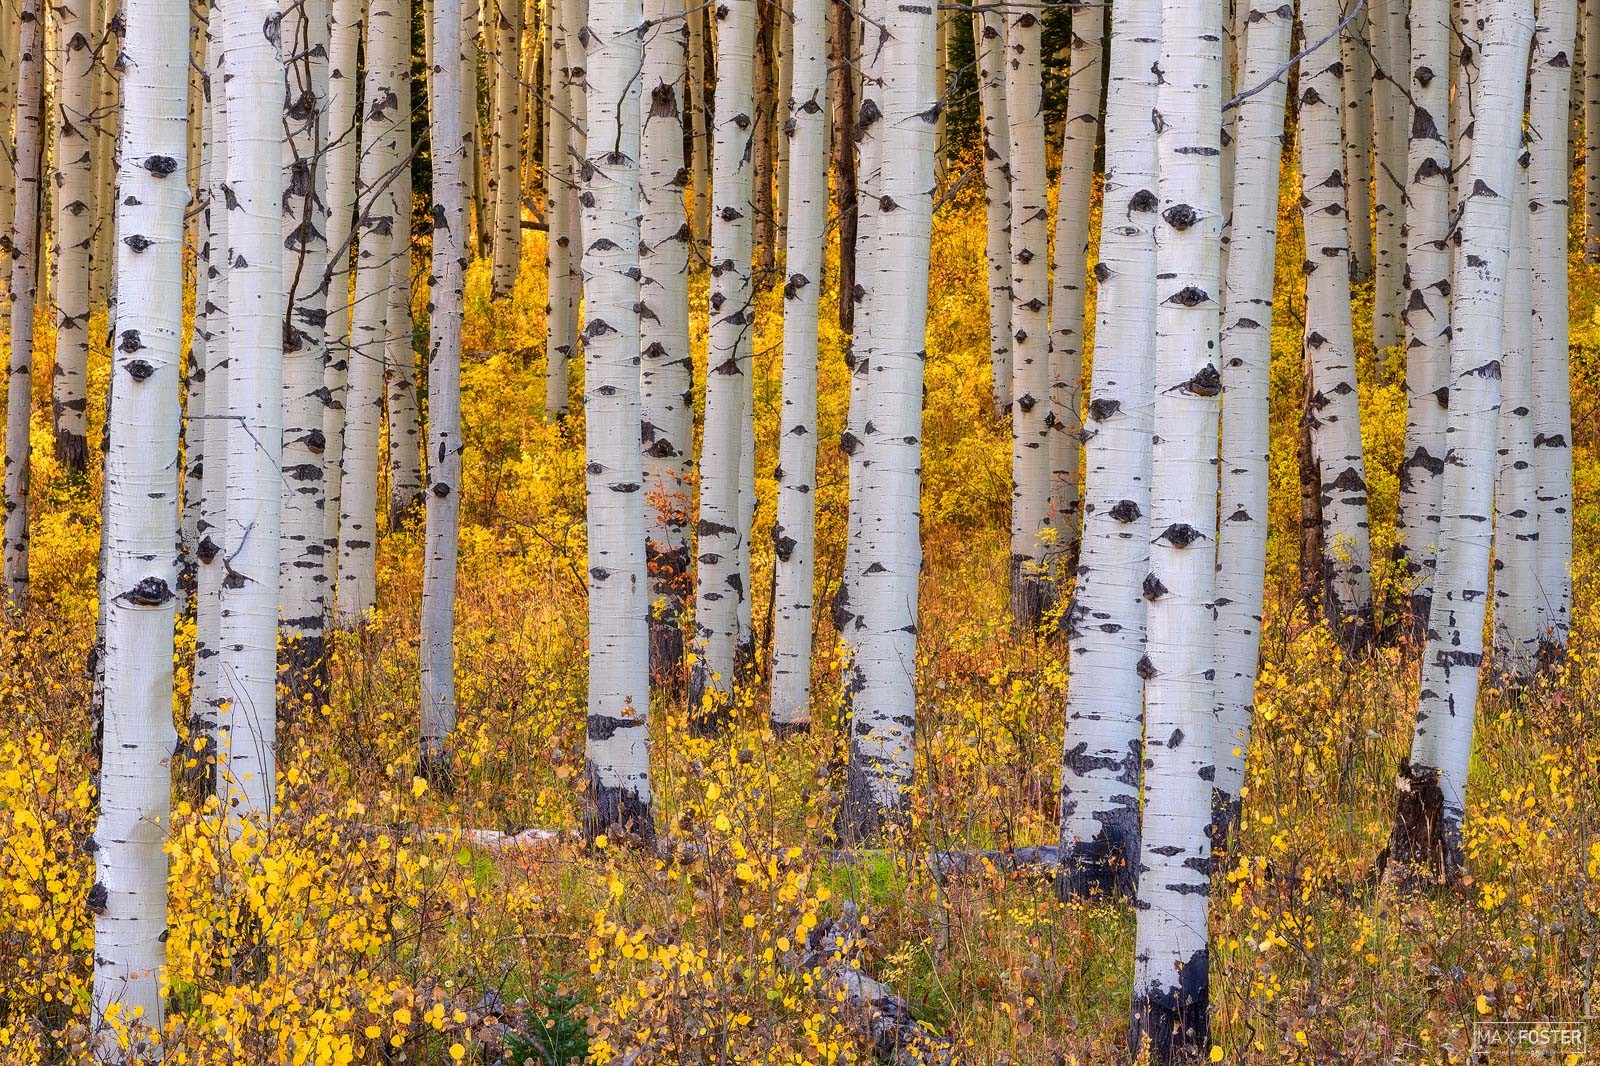 Crested Butte, Colorado, Aspen Trees, Leaves, Gold Standard, photo